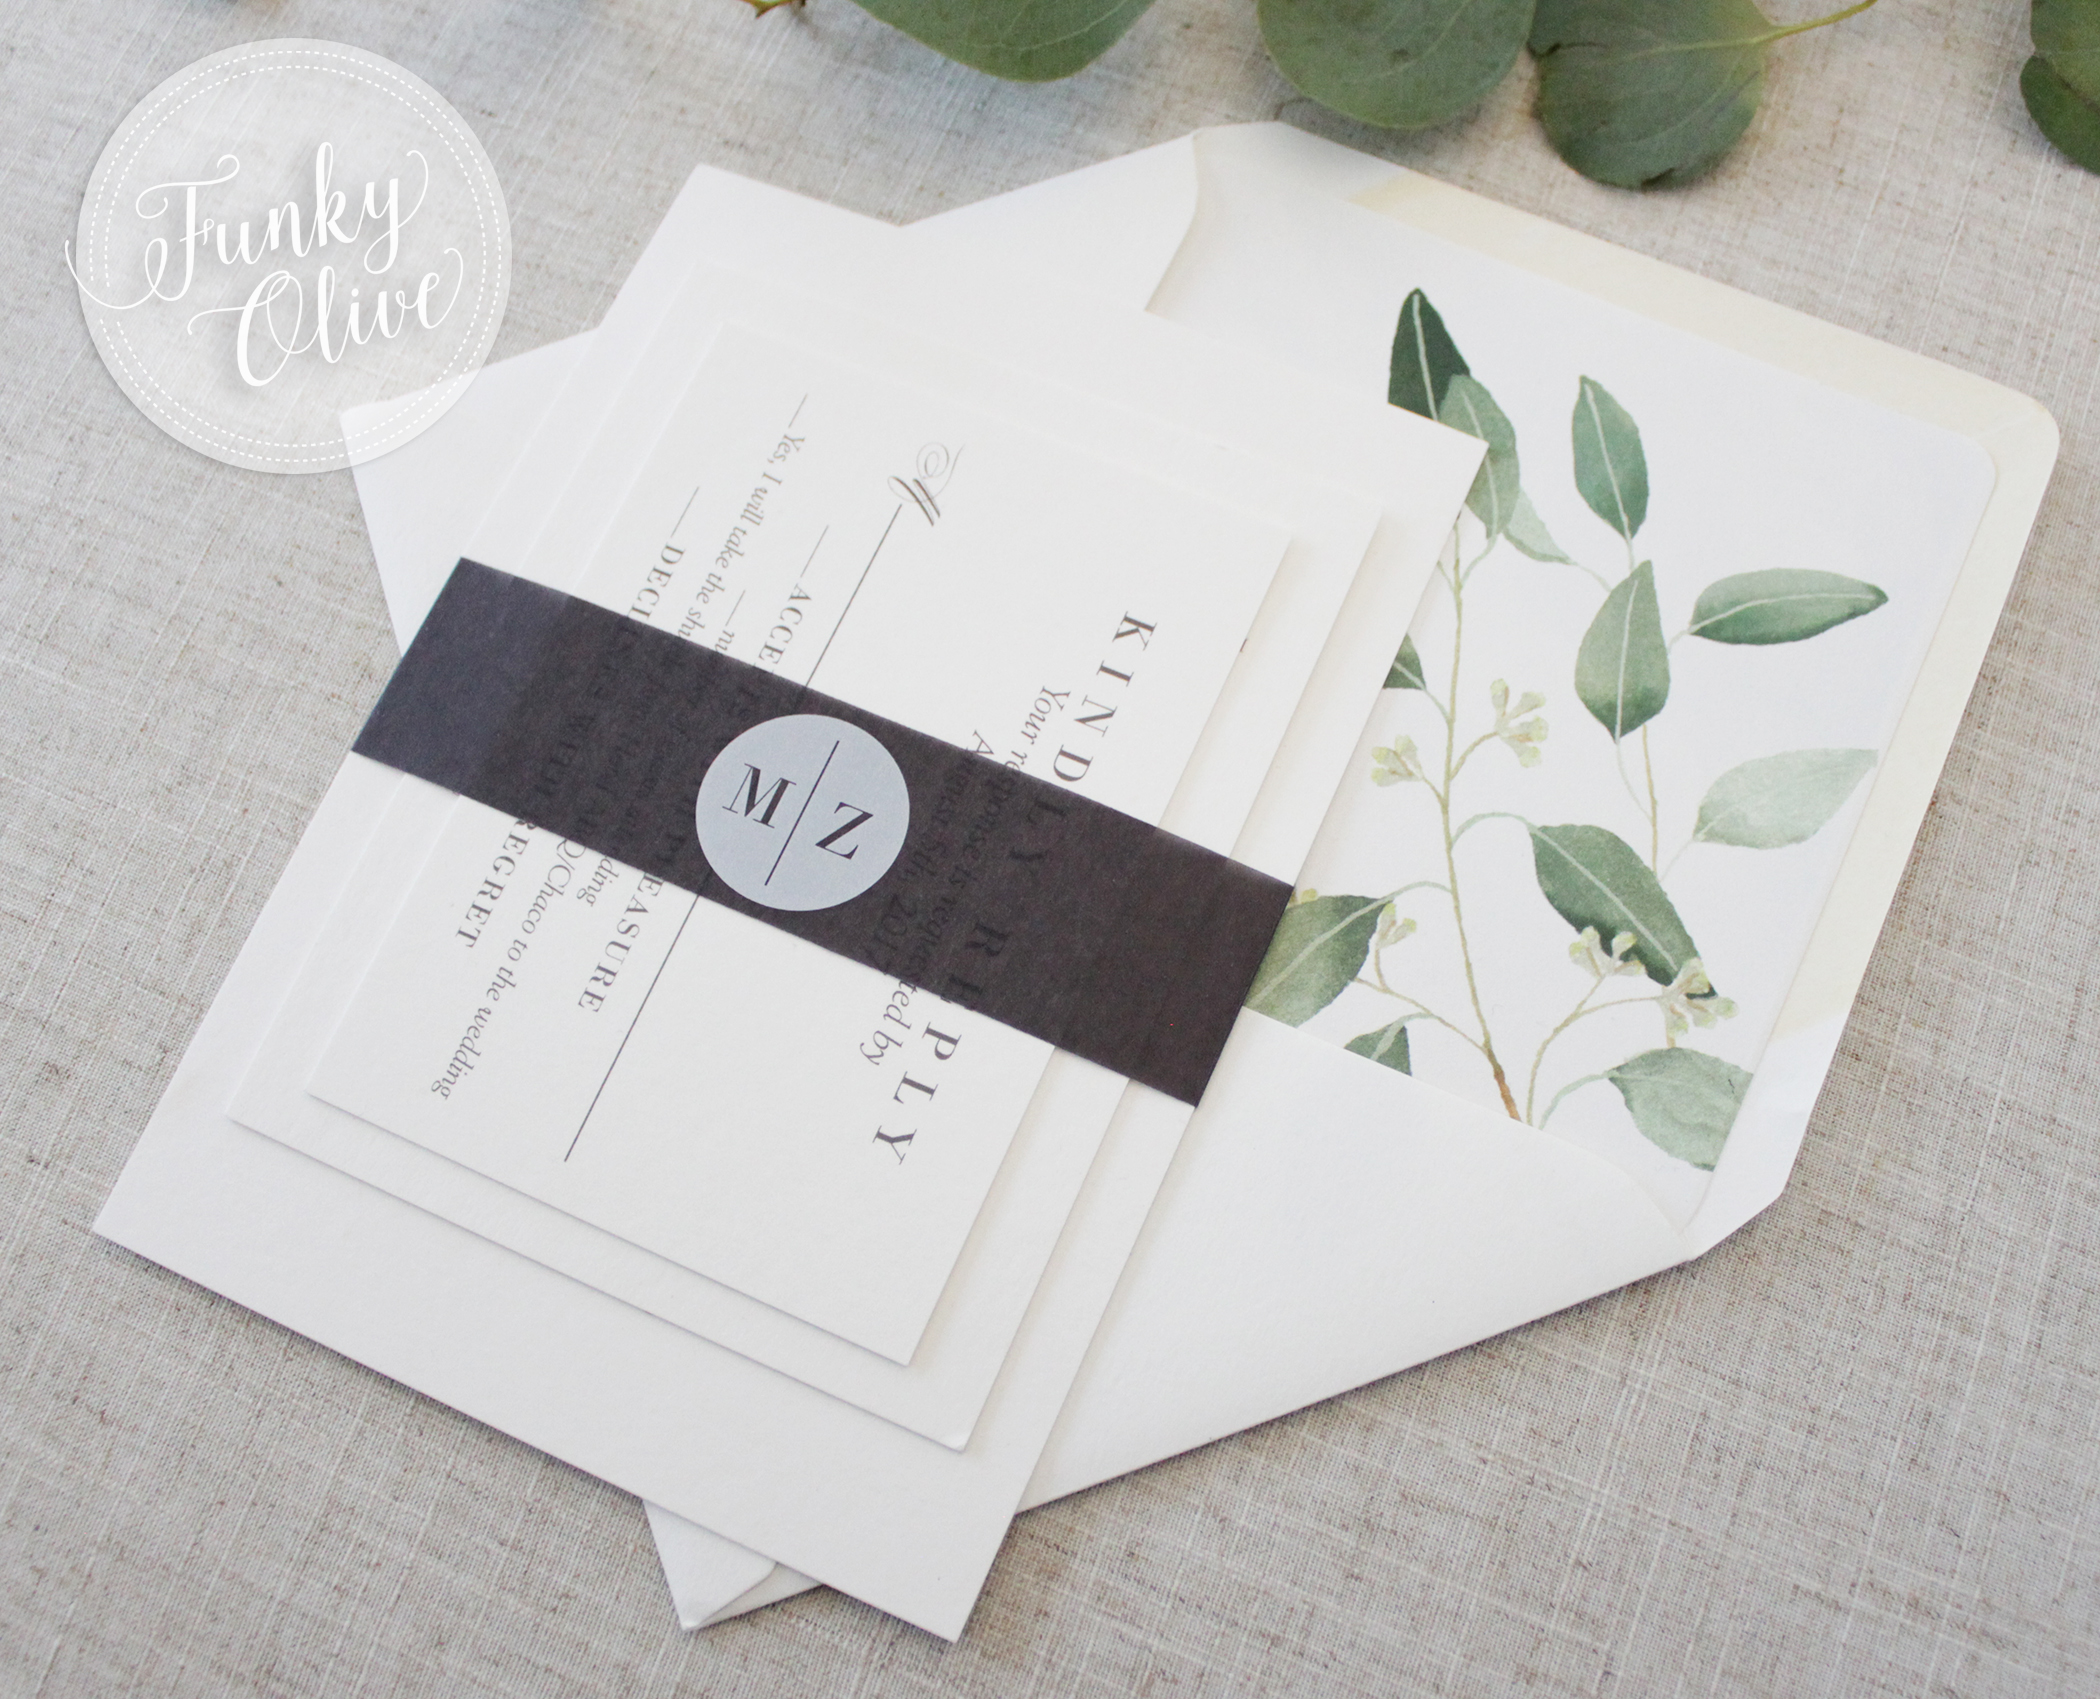 This simple and classicly styled belly band is made of soft black vellum (a thin, translucent paper), with suuuuper trendy white ink printing and a modern monogram.